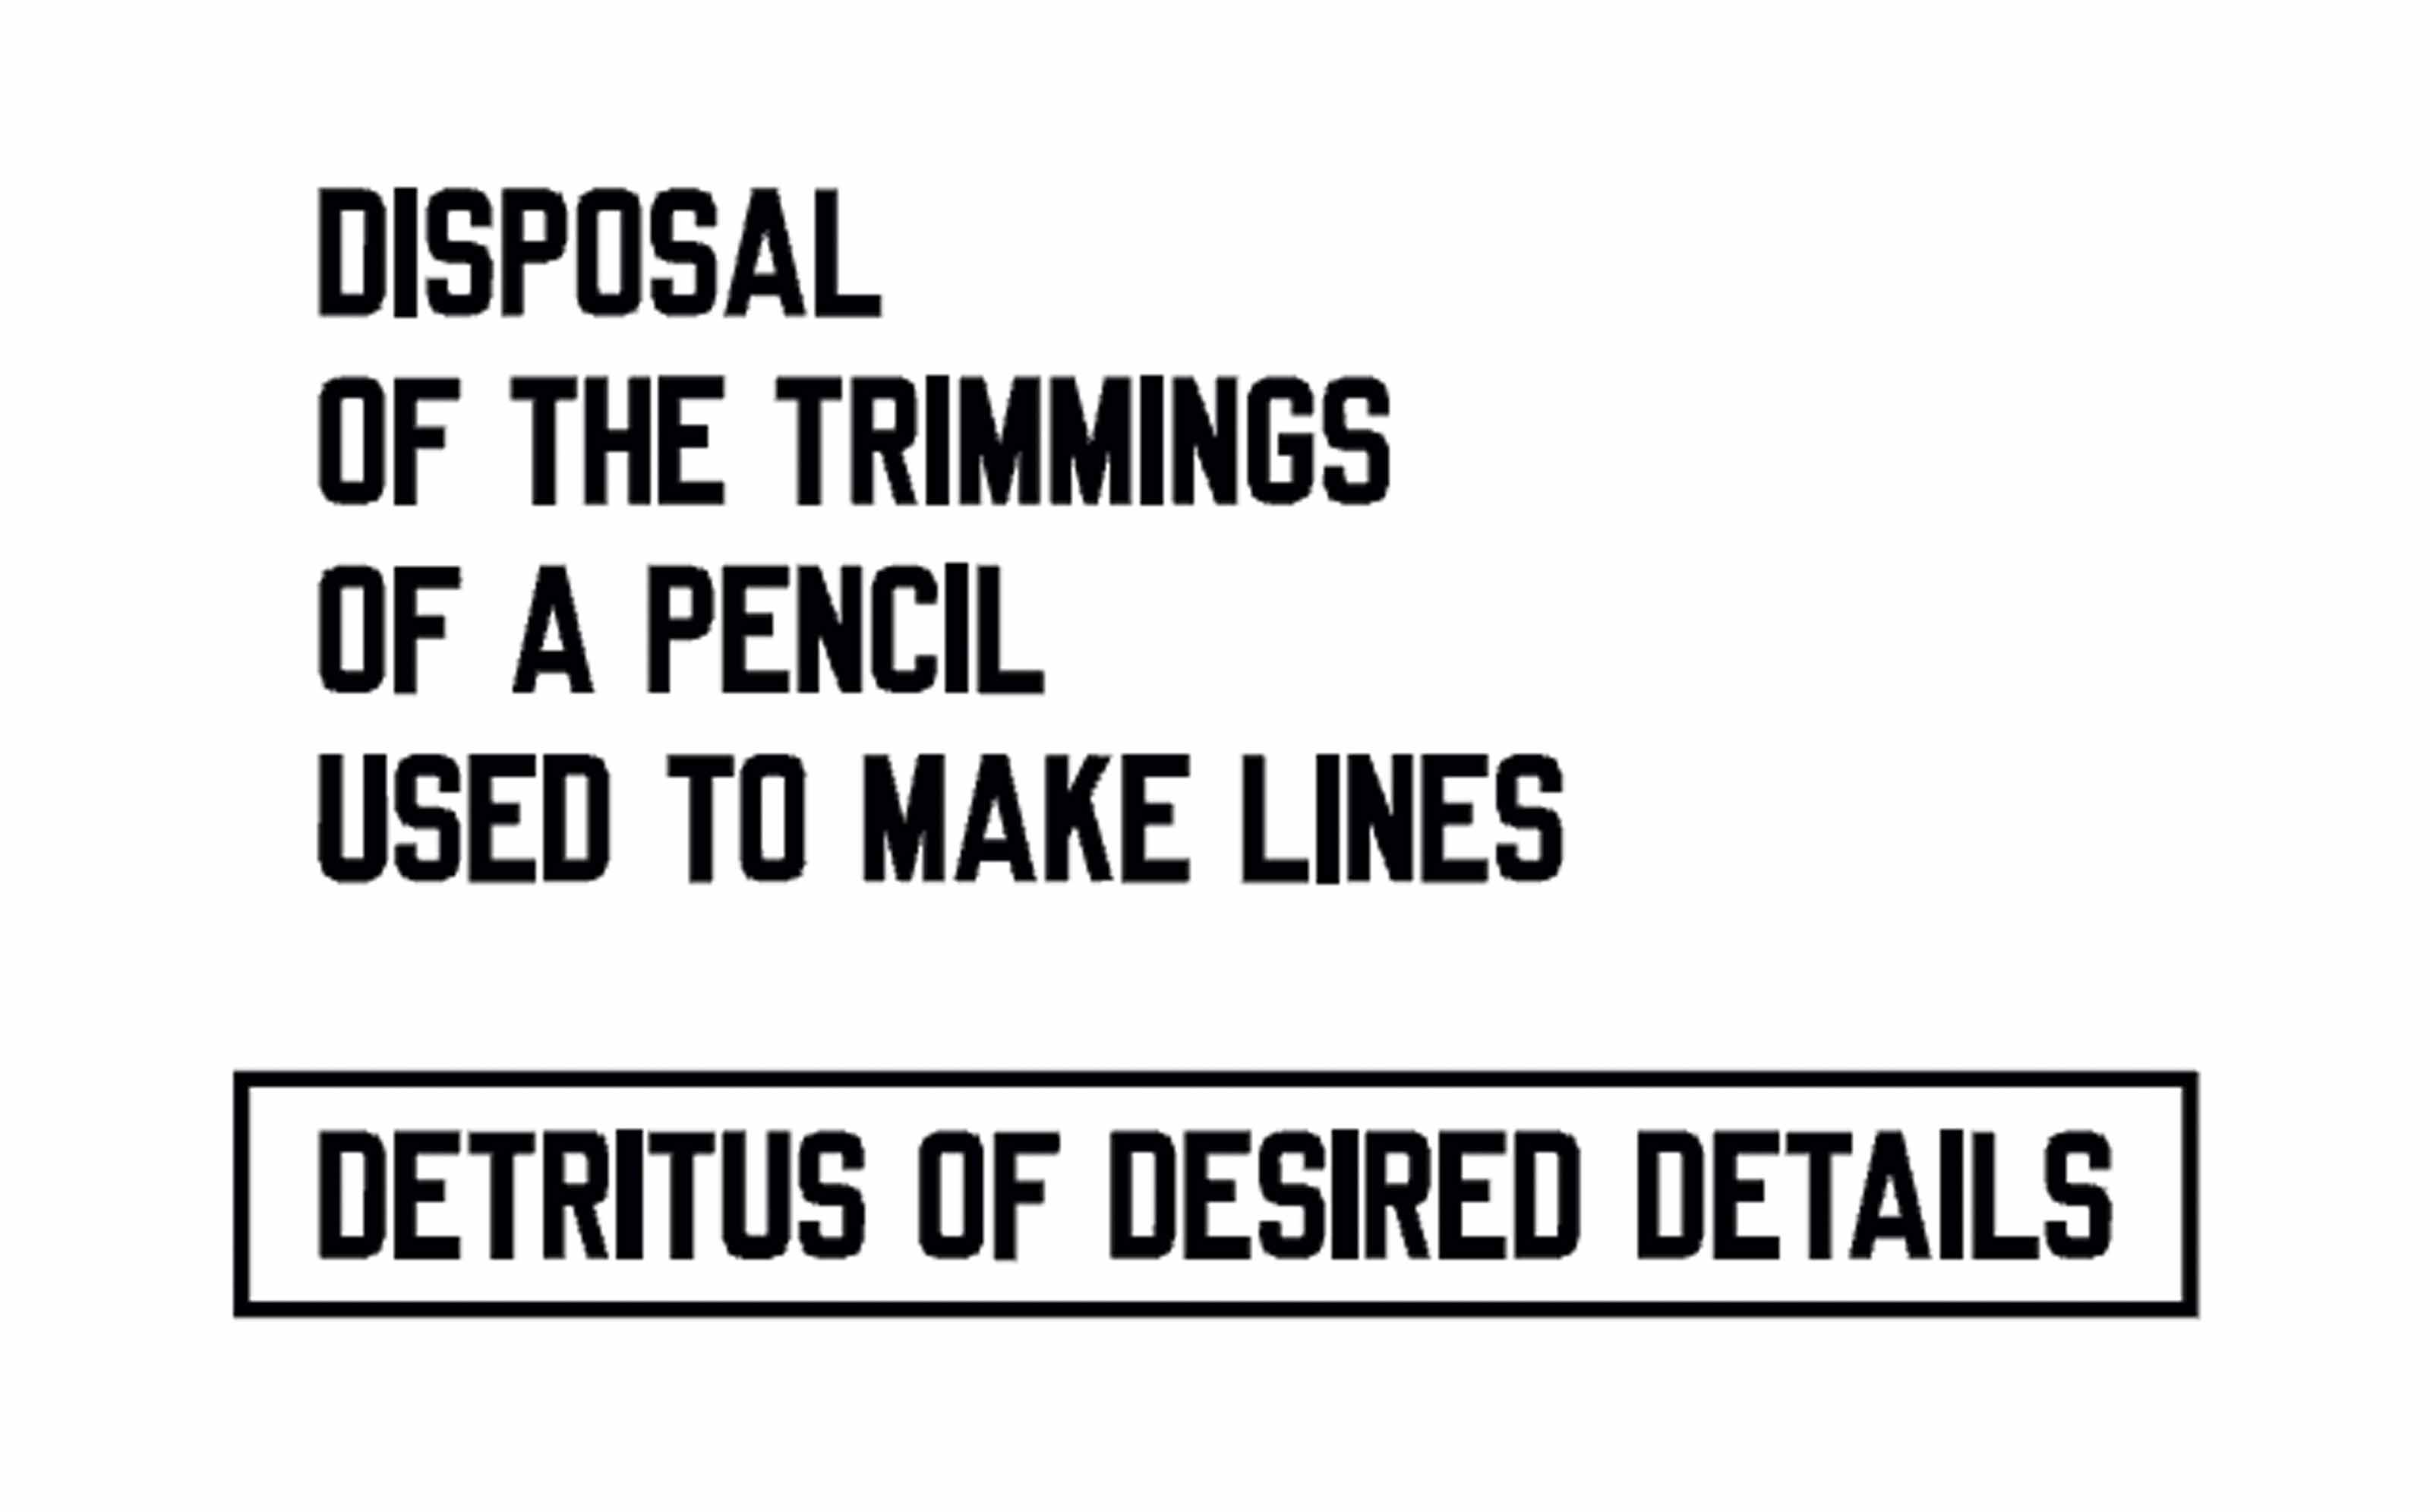 DISPOSAL OF THE TRIMMING OF A PENCIL USED TO MAKE LINES DETRITUS OF DESIRED DETAILS